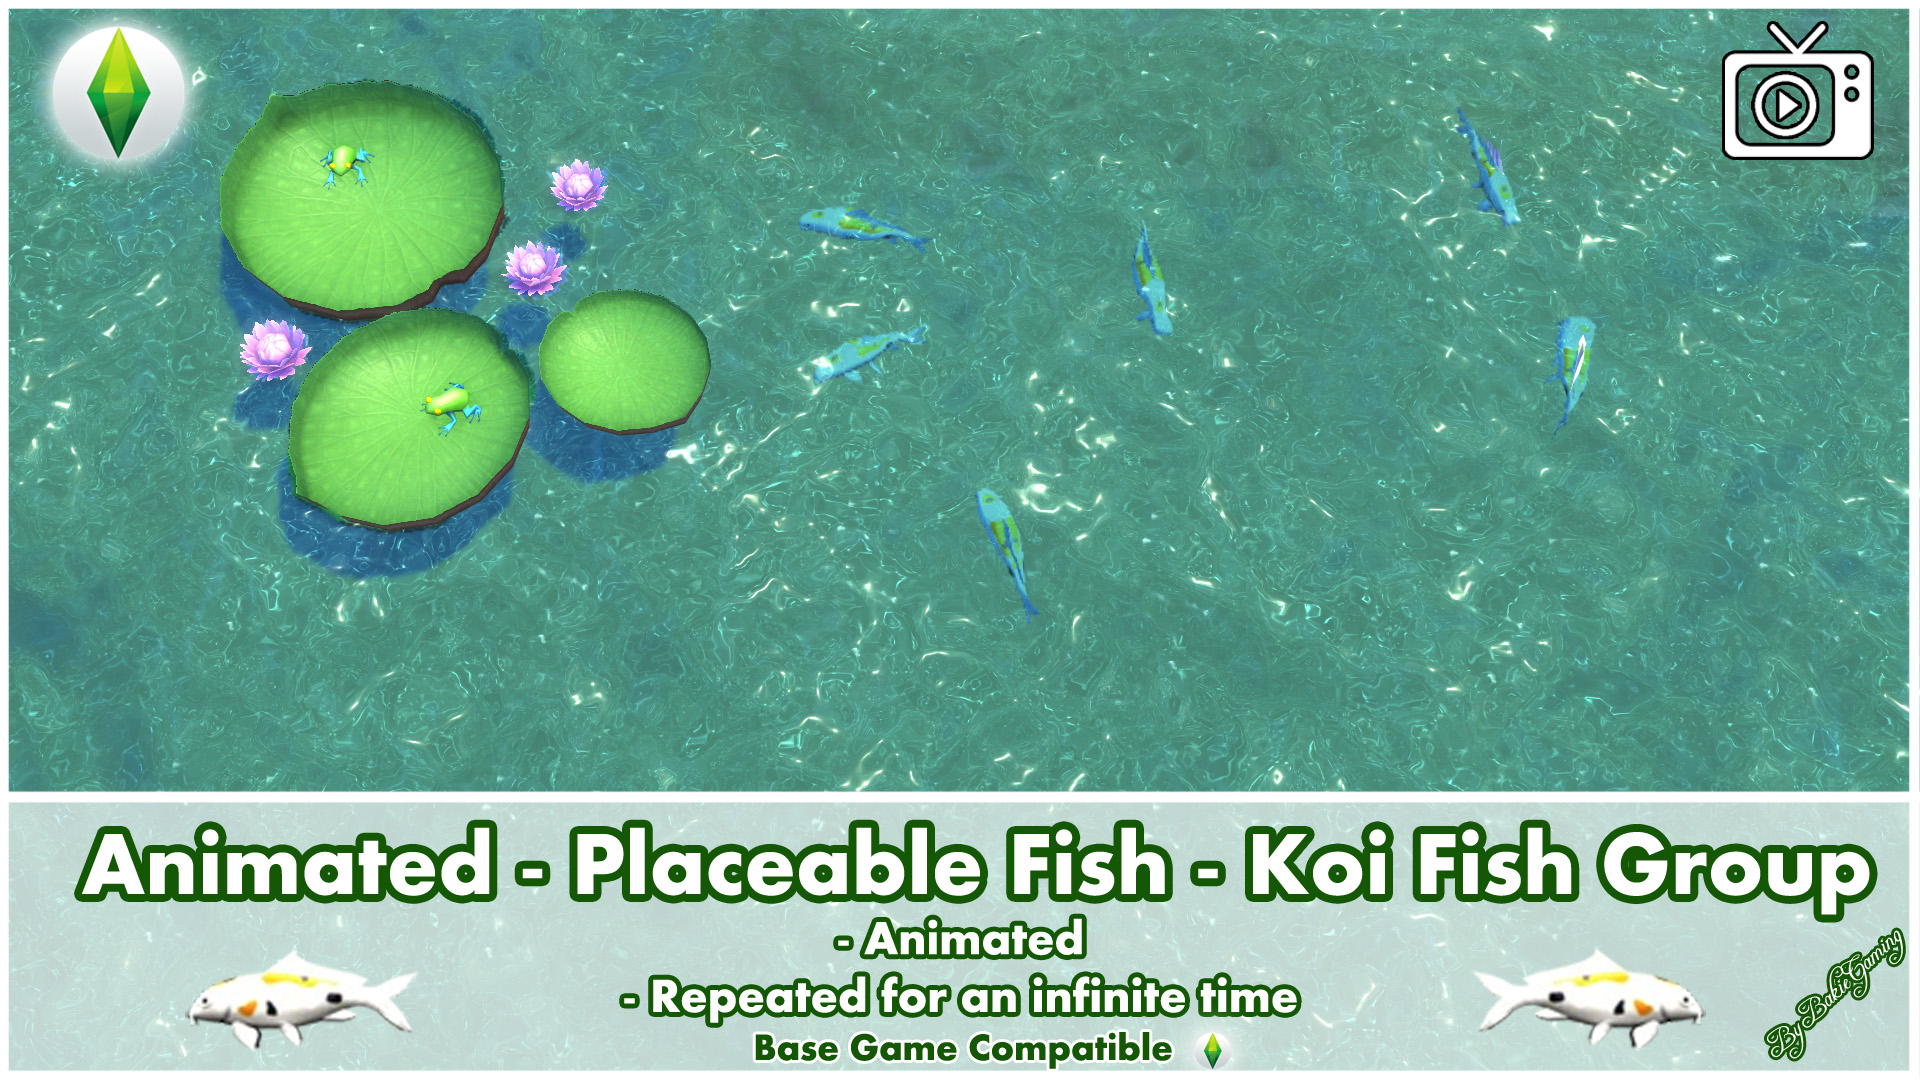 Bakies The Sims 4 Custom Content: Animated - Placeable Fish - Koi Fish Group